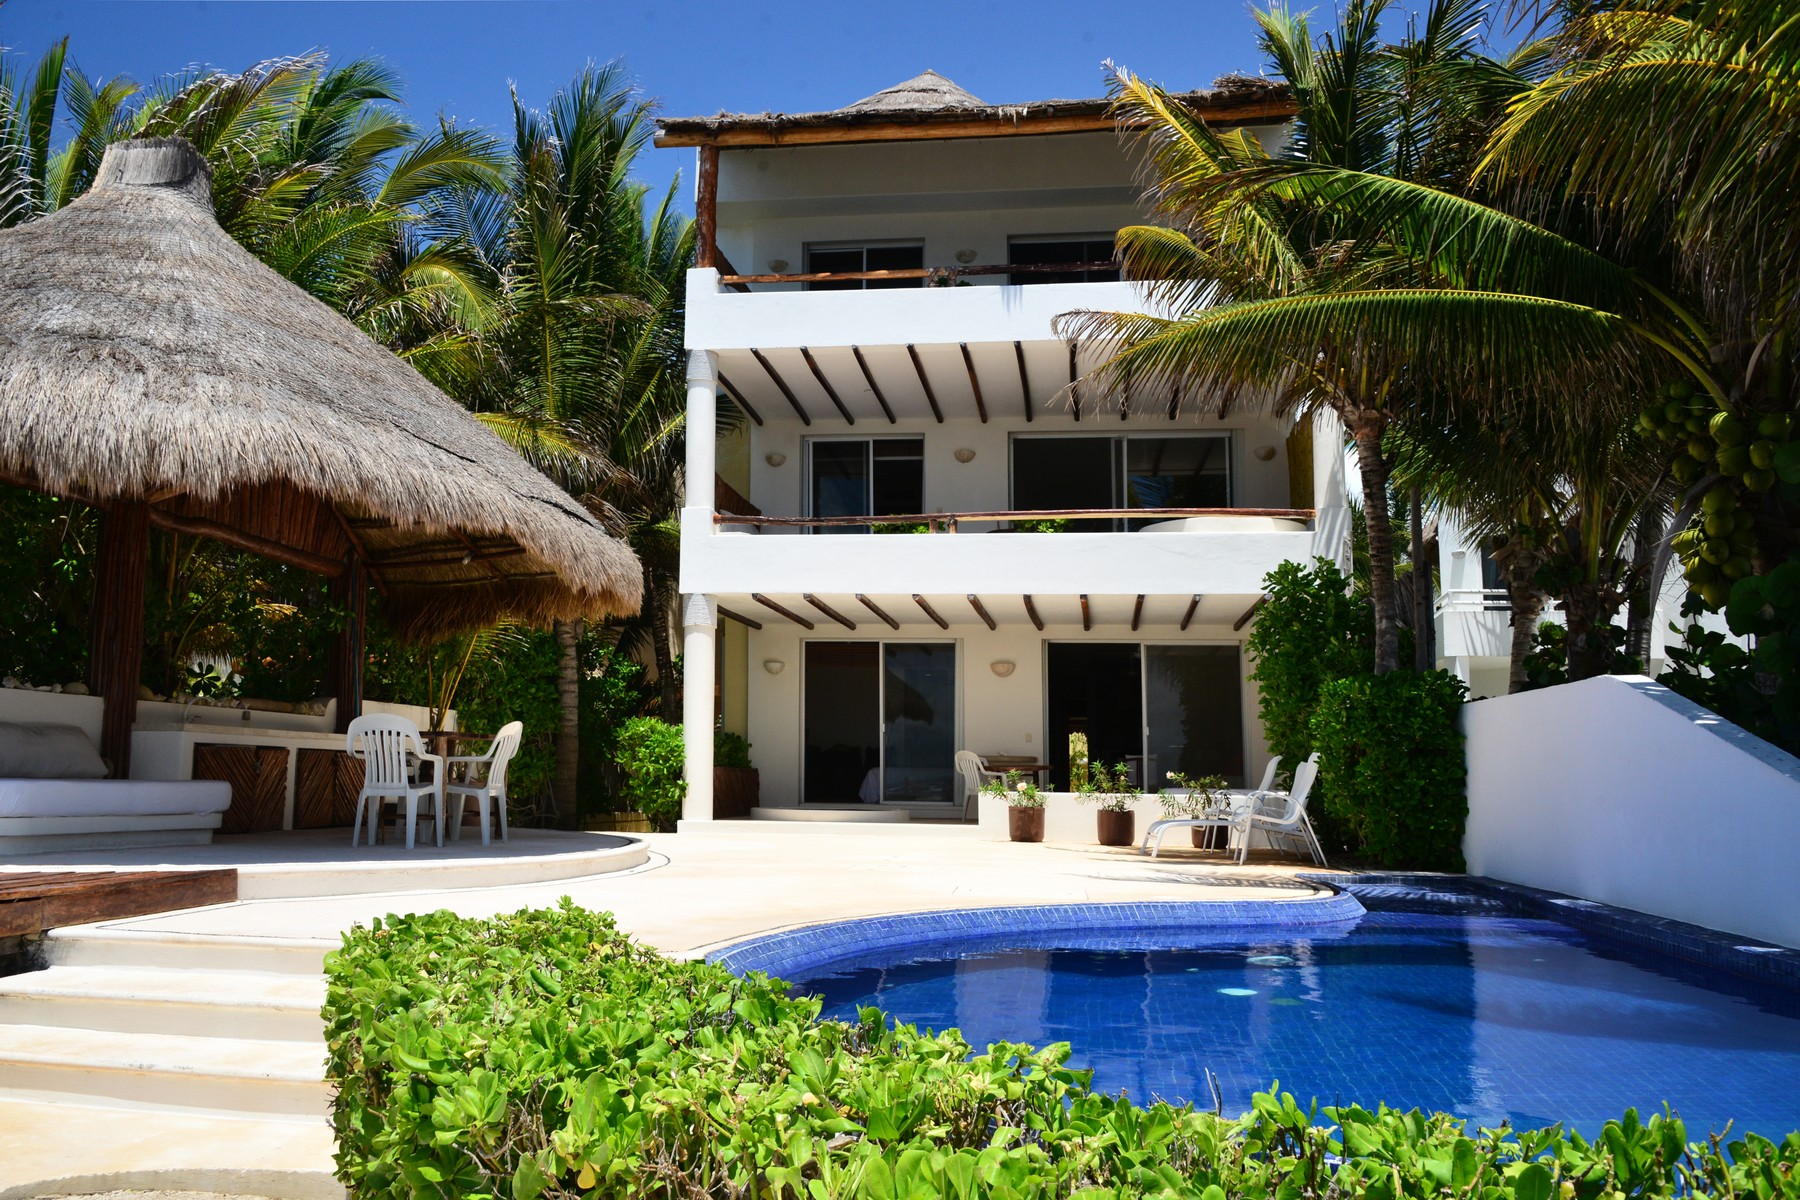 Apartment for Sale at SEAFRONT PARADISE UNIT #101 Seafront Paradise – Unit #101 Predio Maria Irene, Supermzna 12, Mzna 21 13 Puerto Morelos, Quintana Roo 77930 Mexico